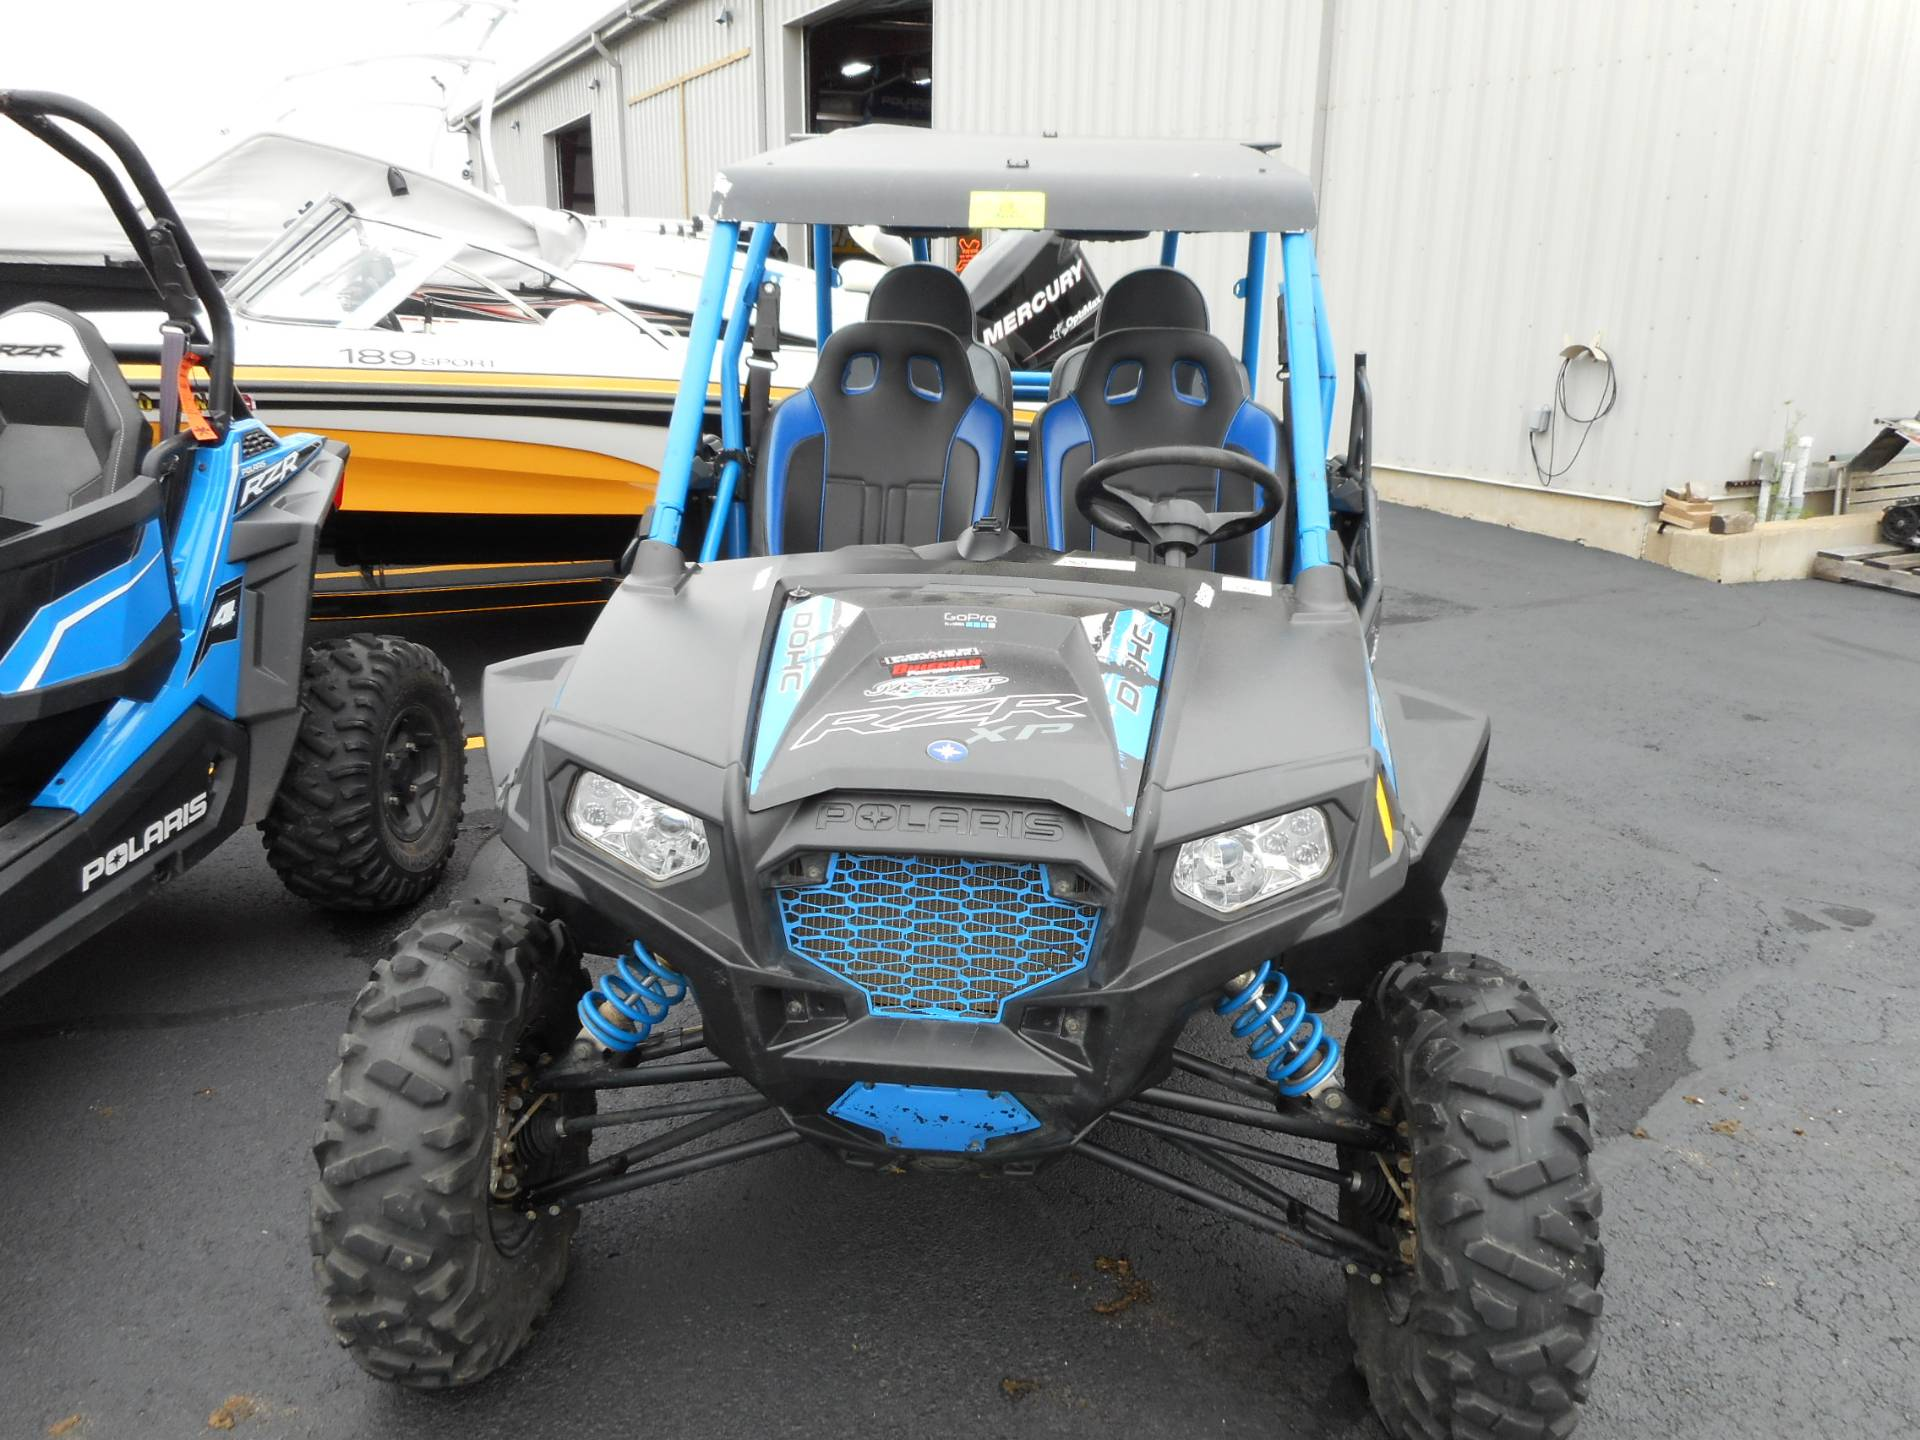 2013 Polaris RZR XP 900 H.O. Jagged X Edition 3